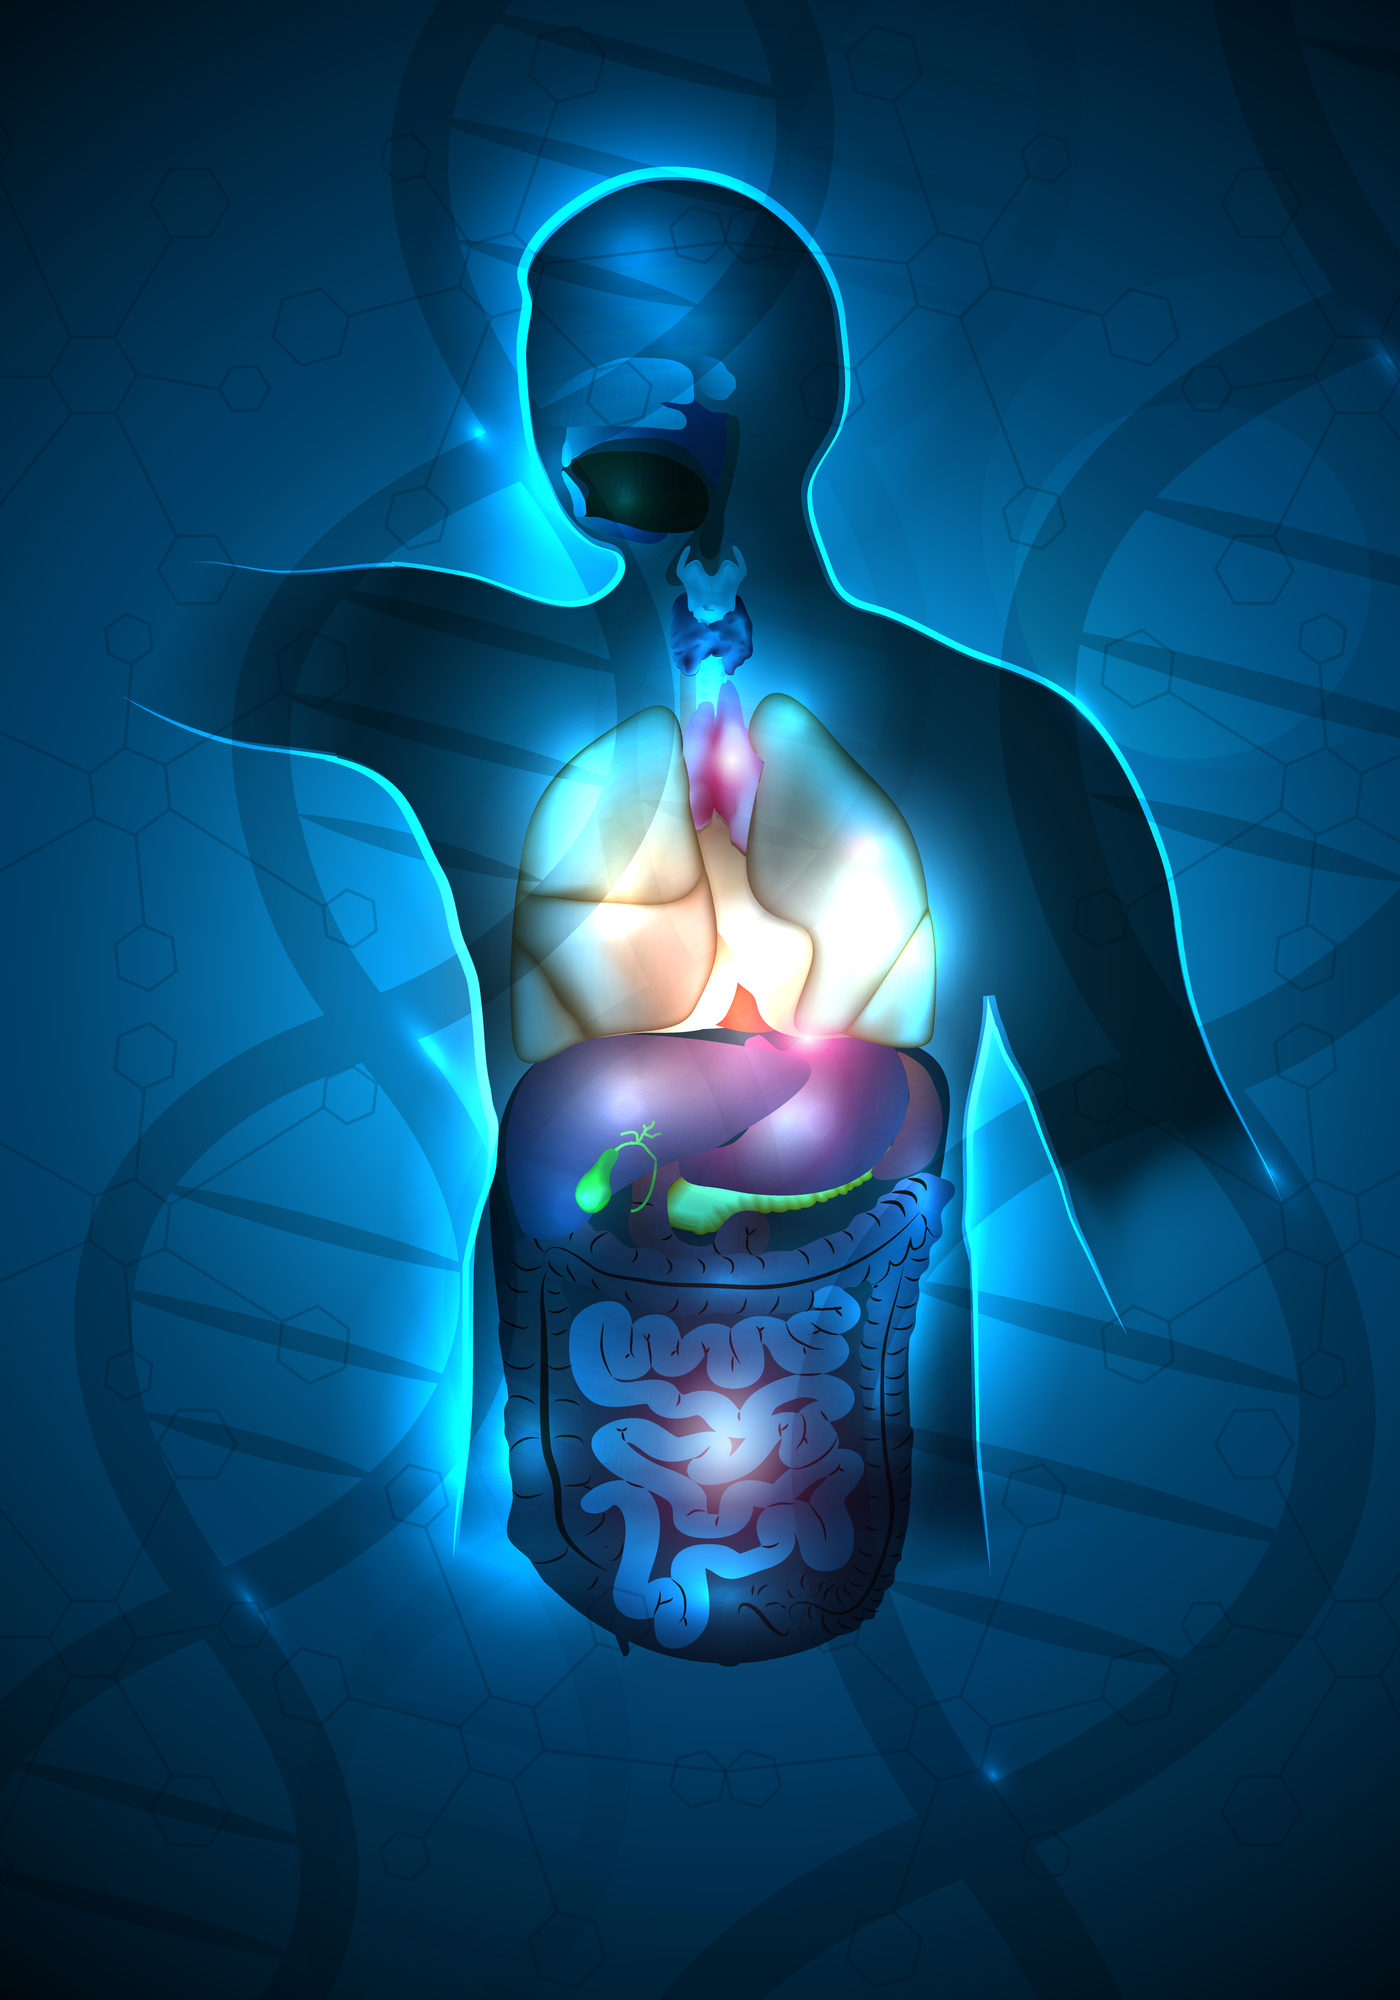 Human anatomy abstract design, DNA chain at the background. Beautiful deep blue color and sparkling lights.